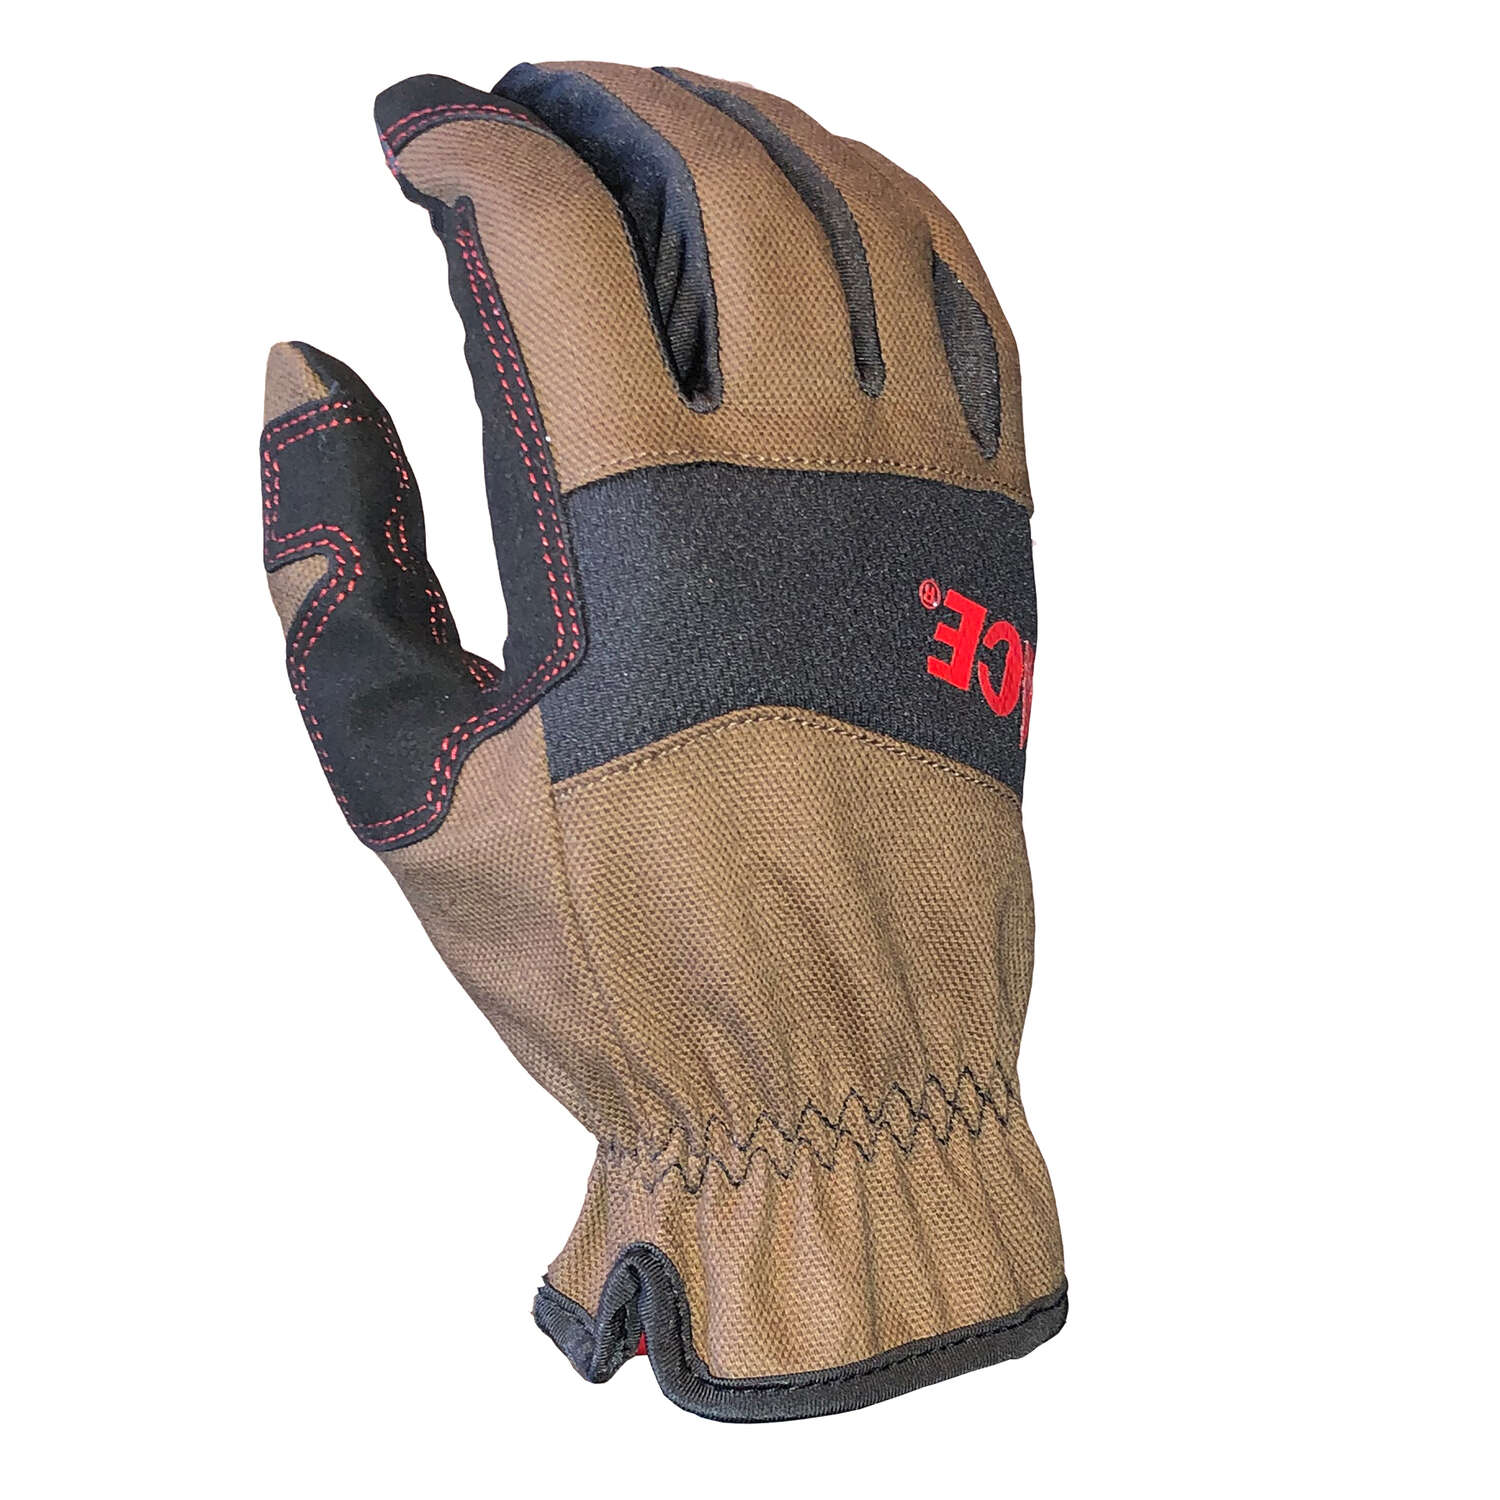 Ace  XL  Duck Canvas  Utility  Black/Brown  Gloves